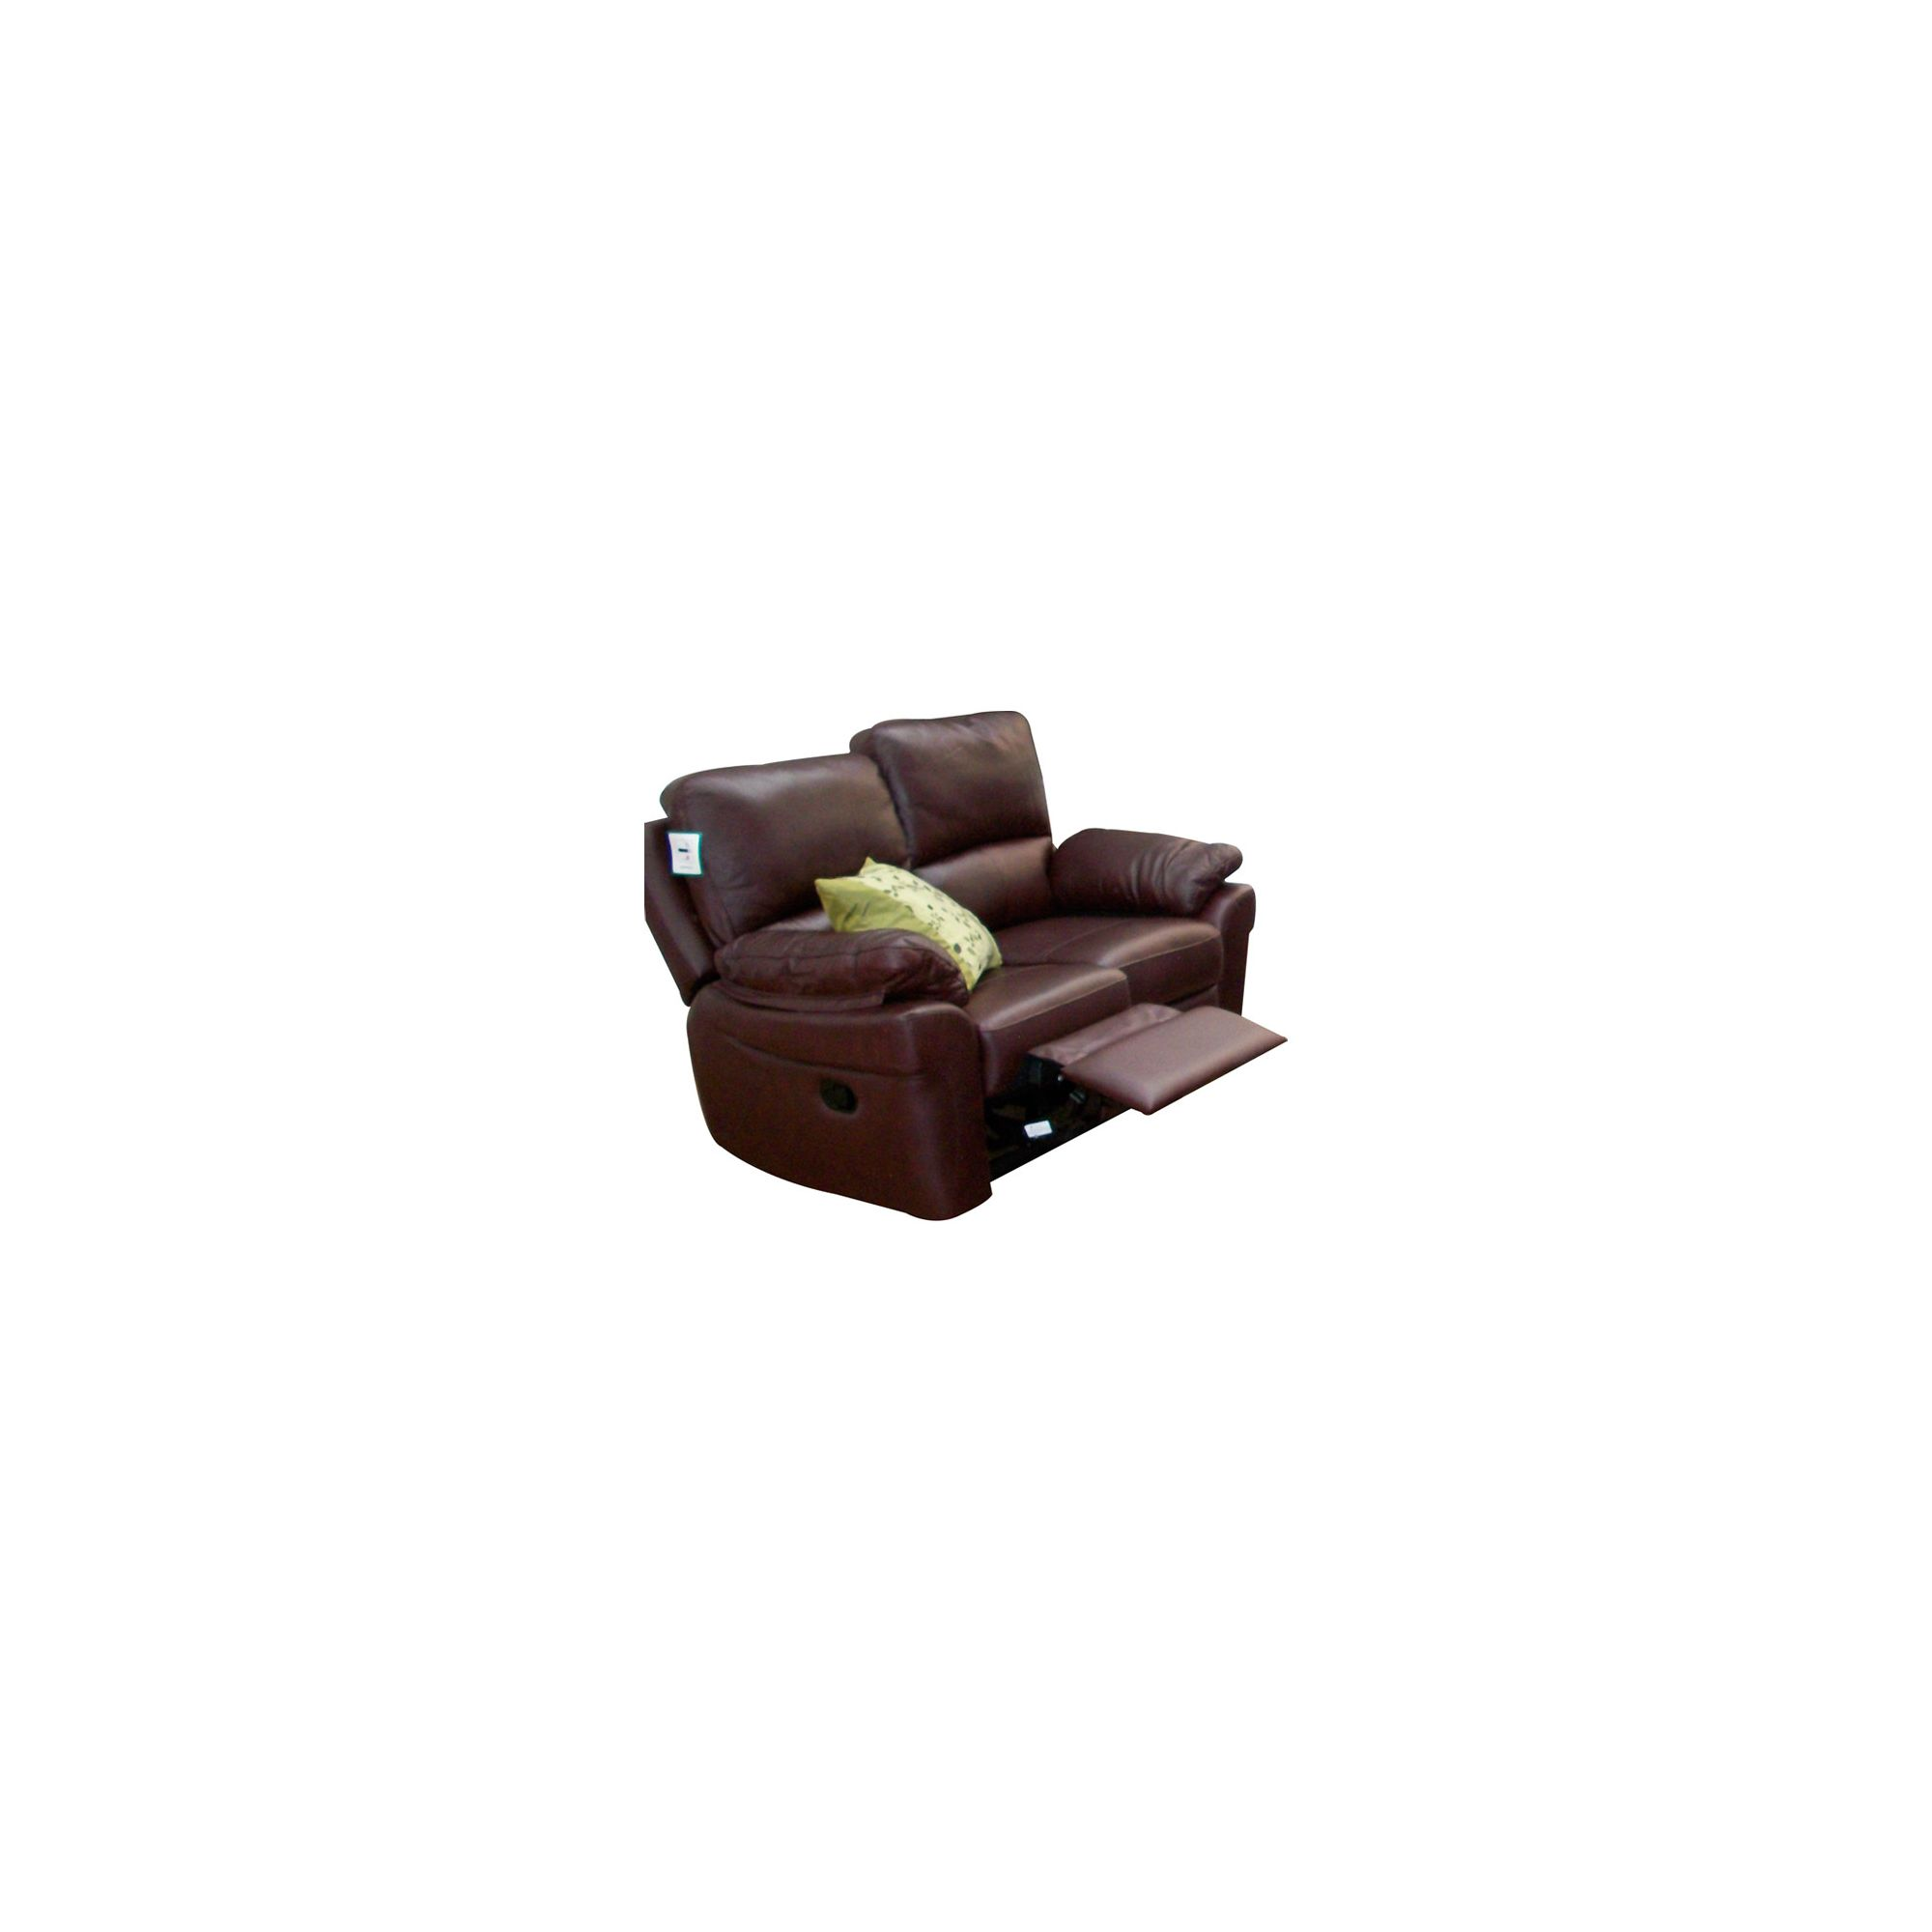 Furniture Link Monzano Two Seat Reclining Sofa in Chestnut - Chestnut at Tesco Direct